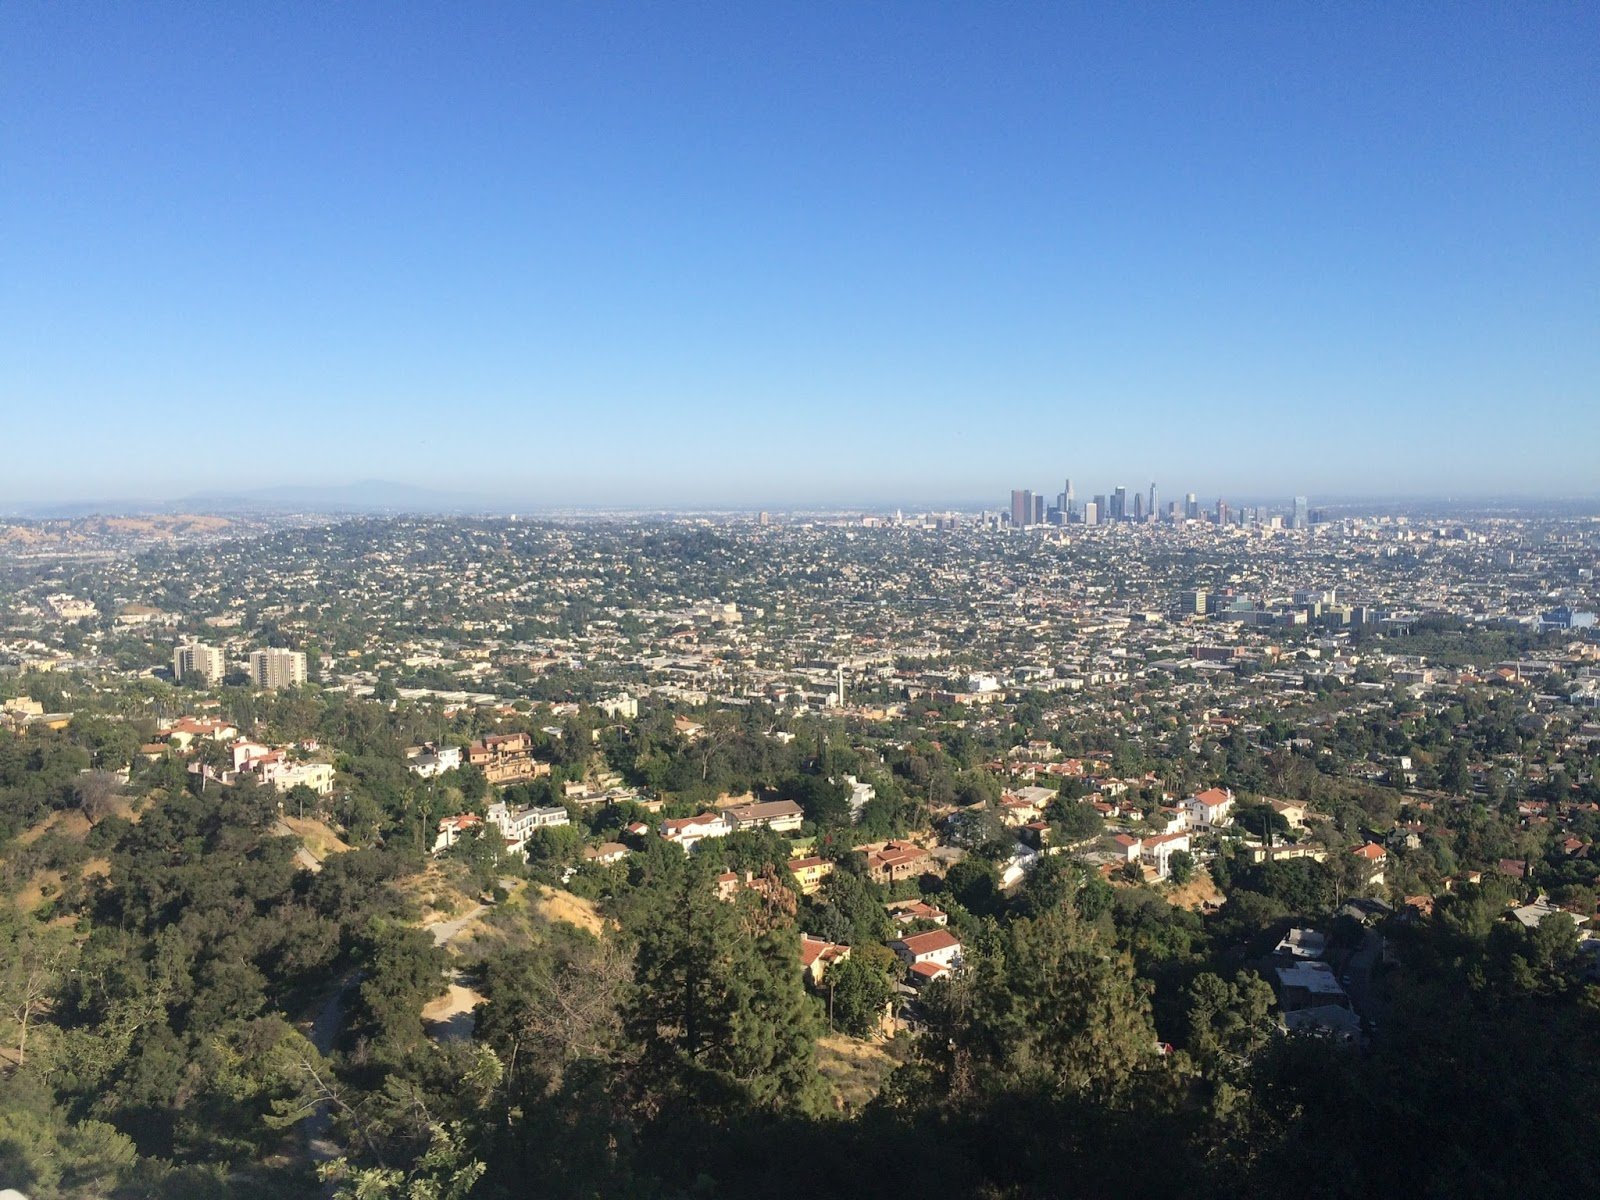 Los Angeles - Observatory